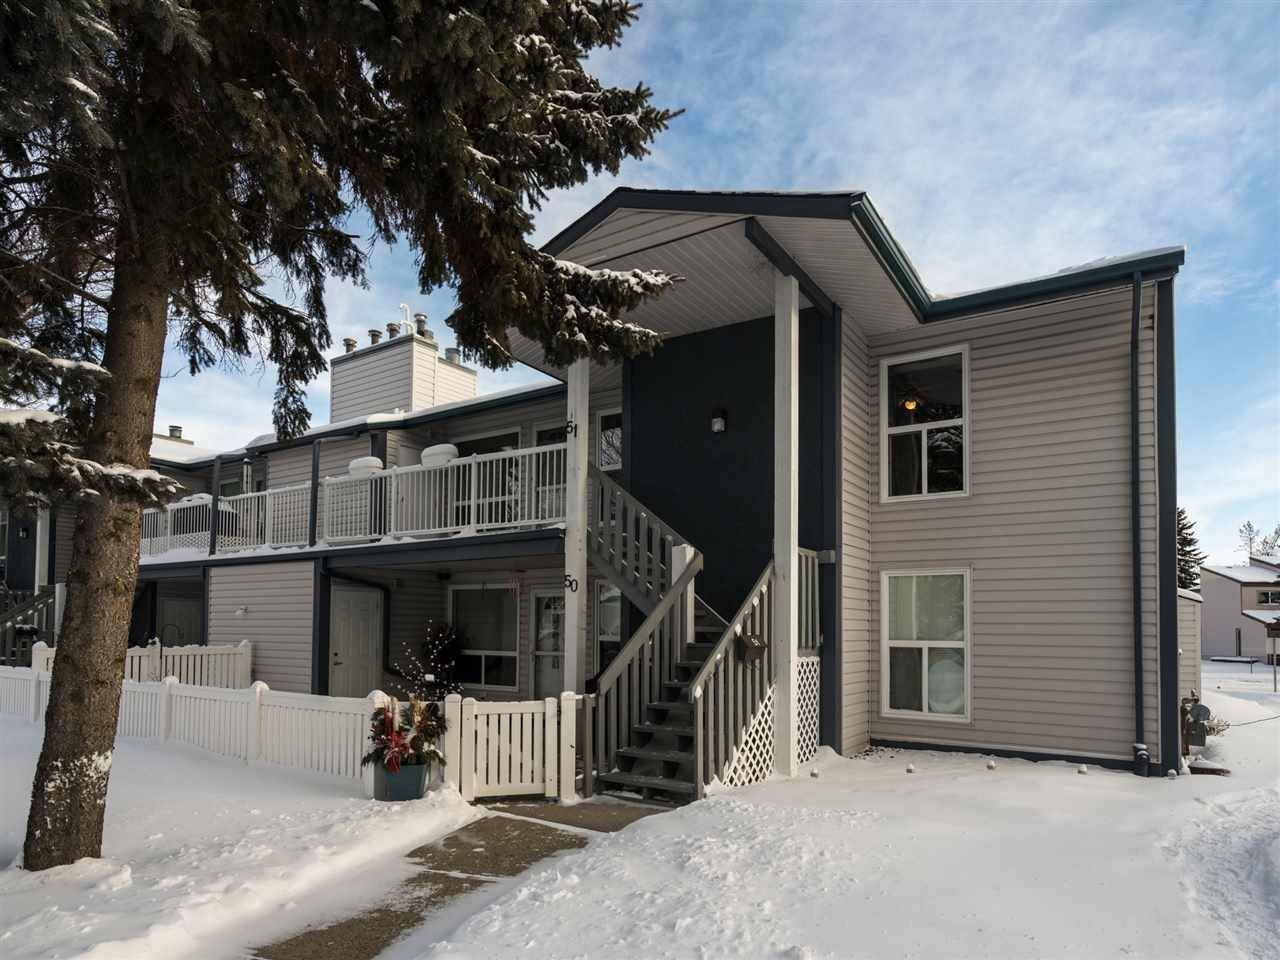 Townhouse for sale at 14620 26 St Nw Unit 51 Edmonton Alberta - MLS: E4185042